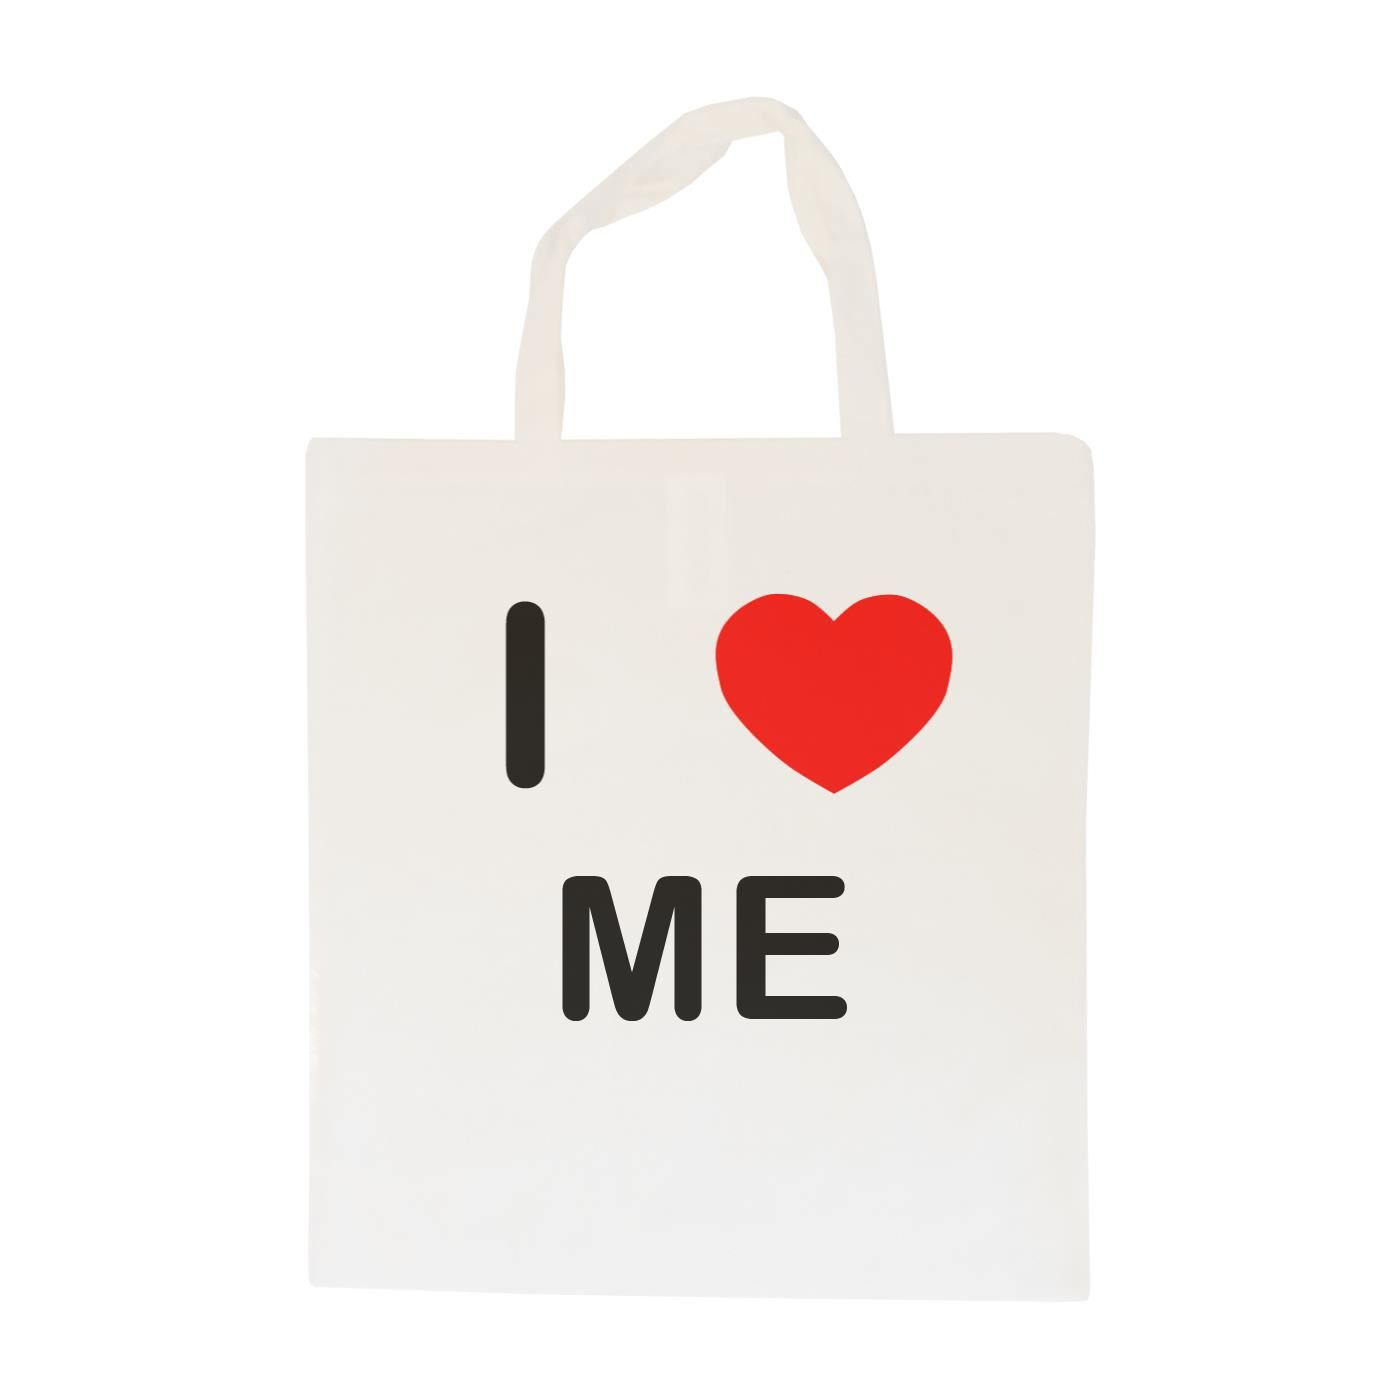 I Love Me - Cotton Bag | Size choice Tote, Shopper or Sling